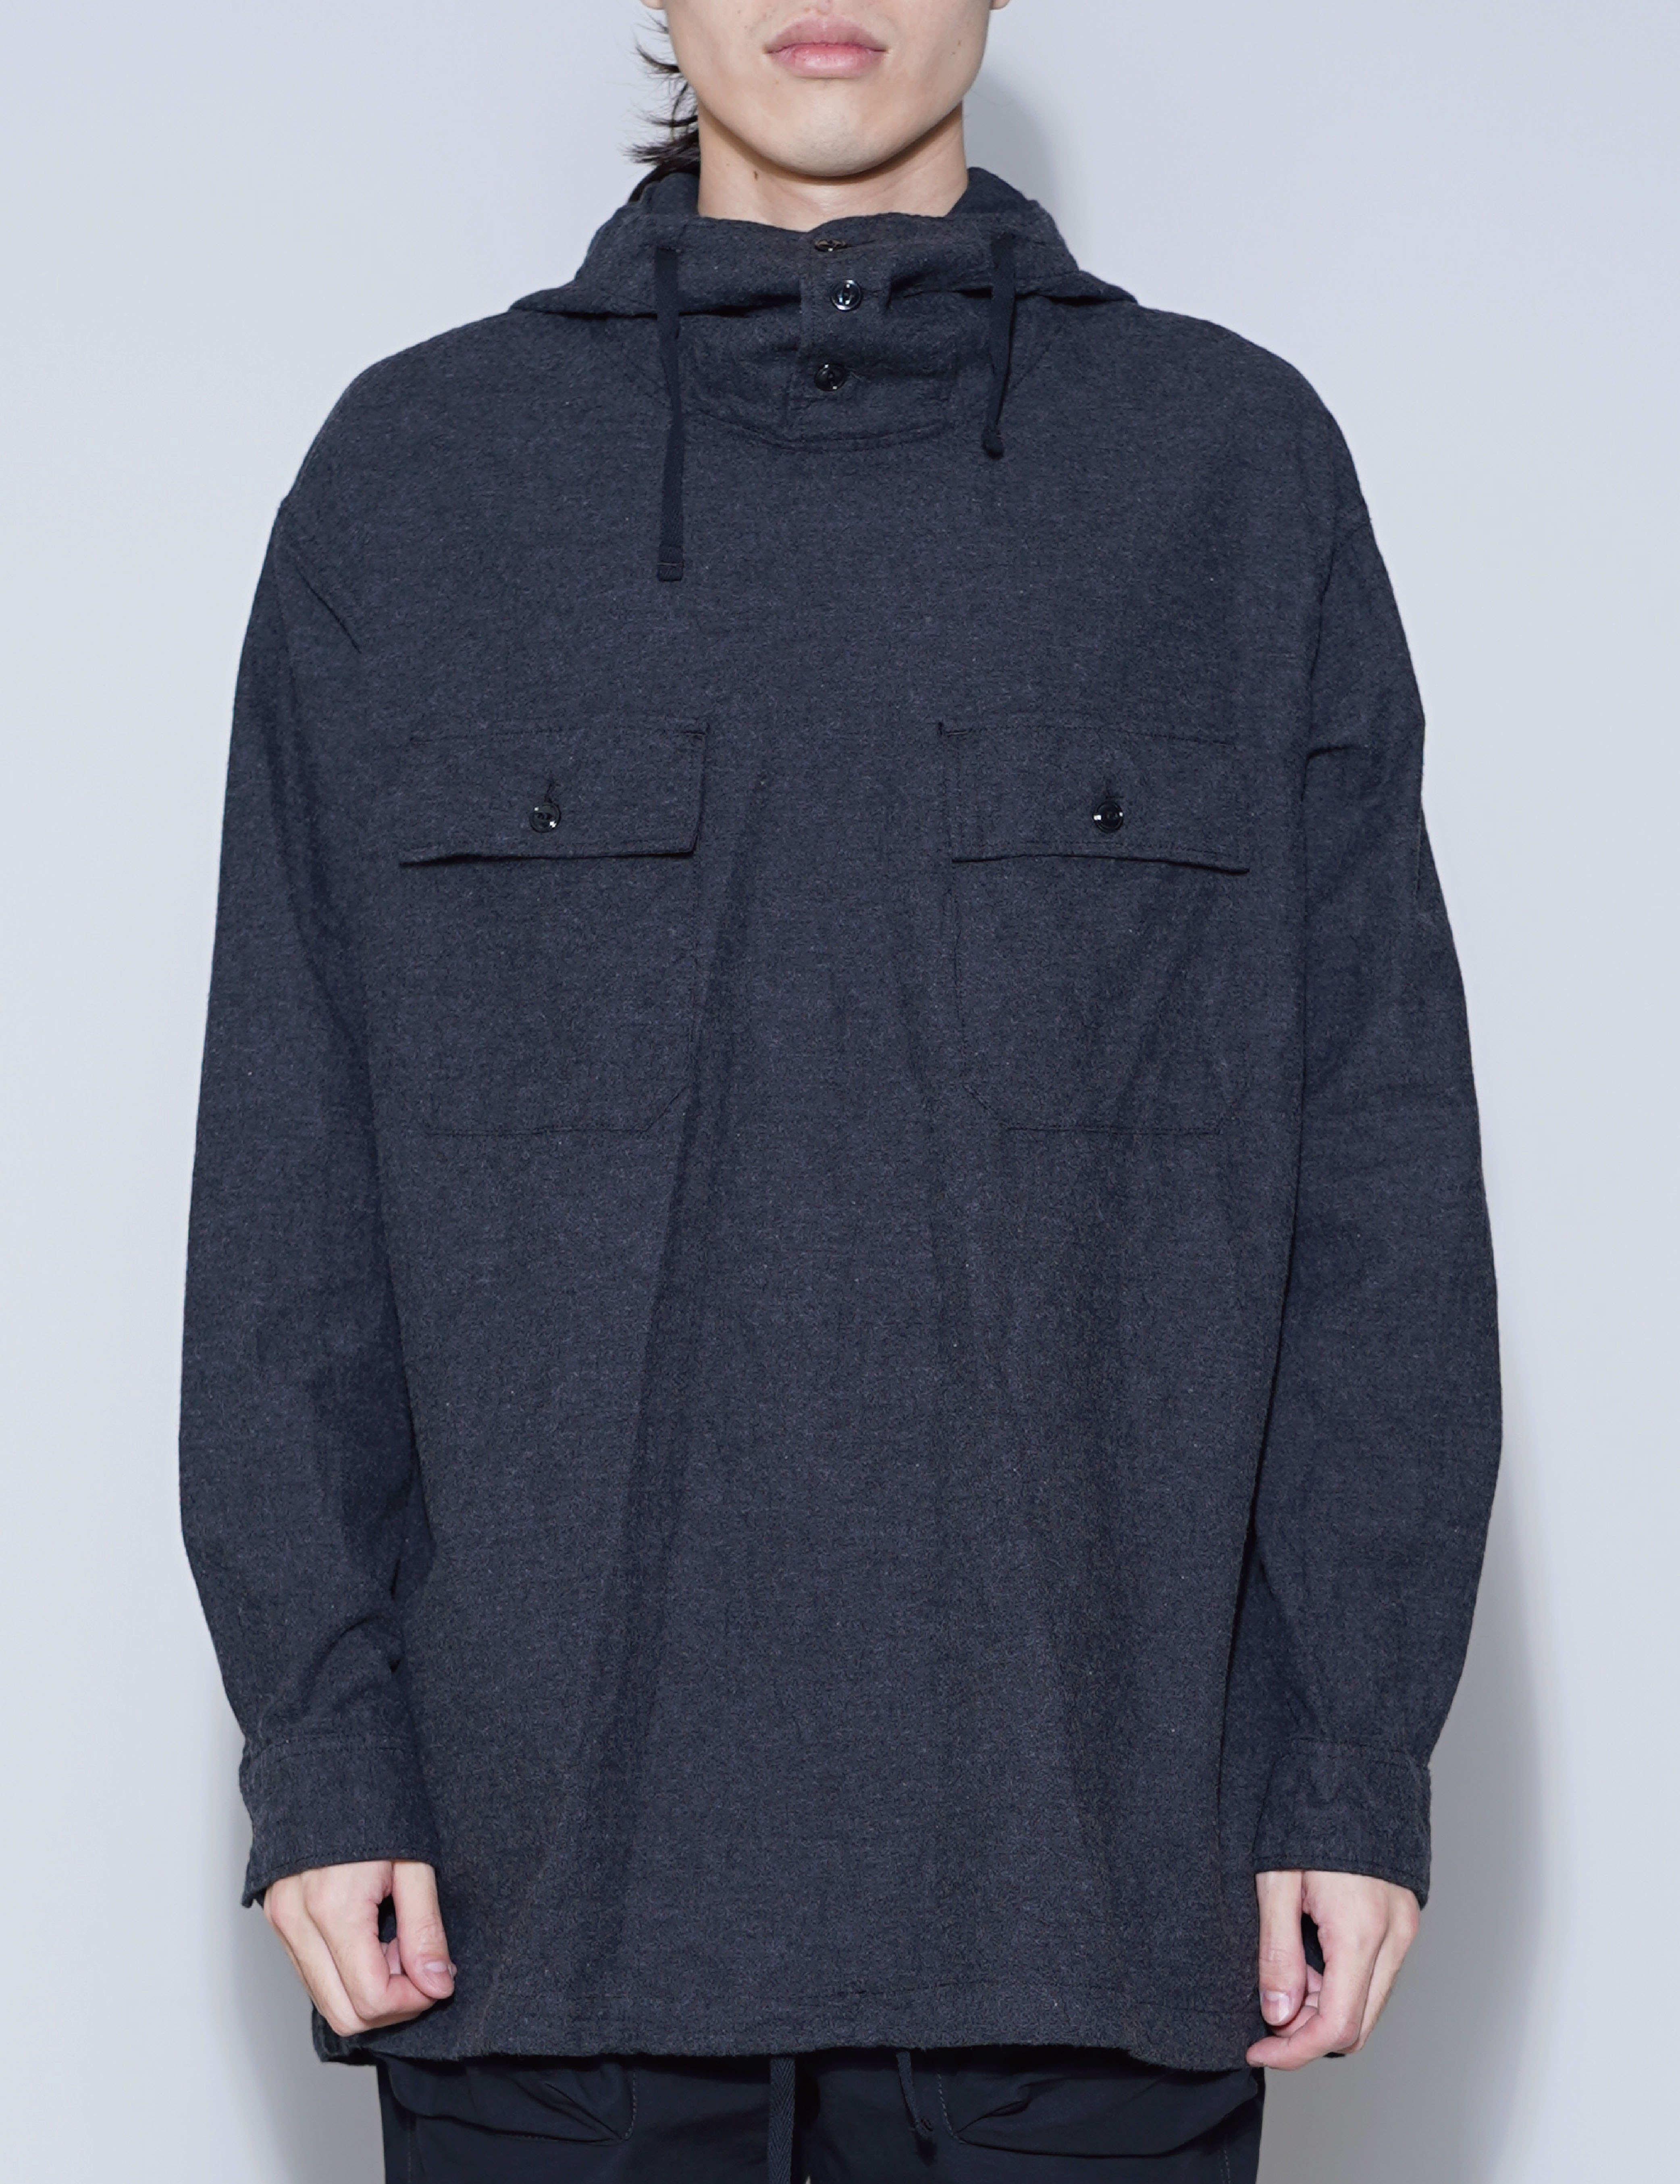 CAGOULE SHIRT (CHARCOAL HEATHER)